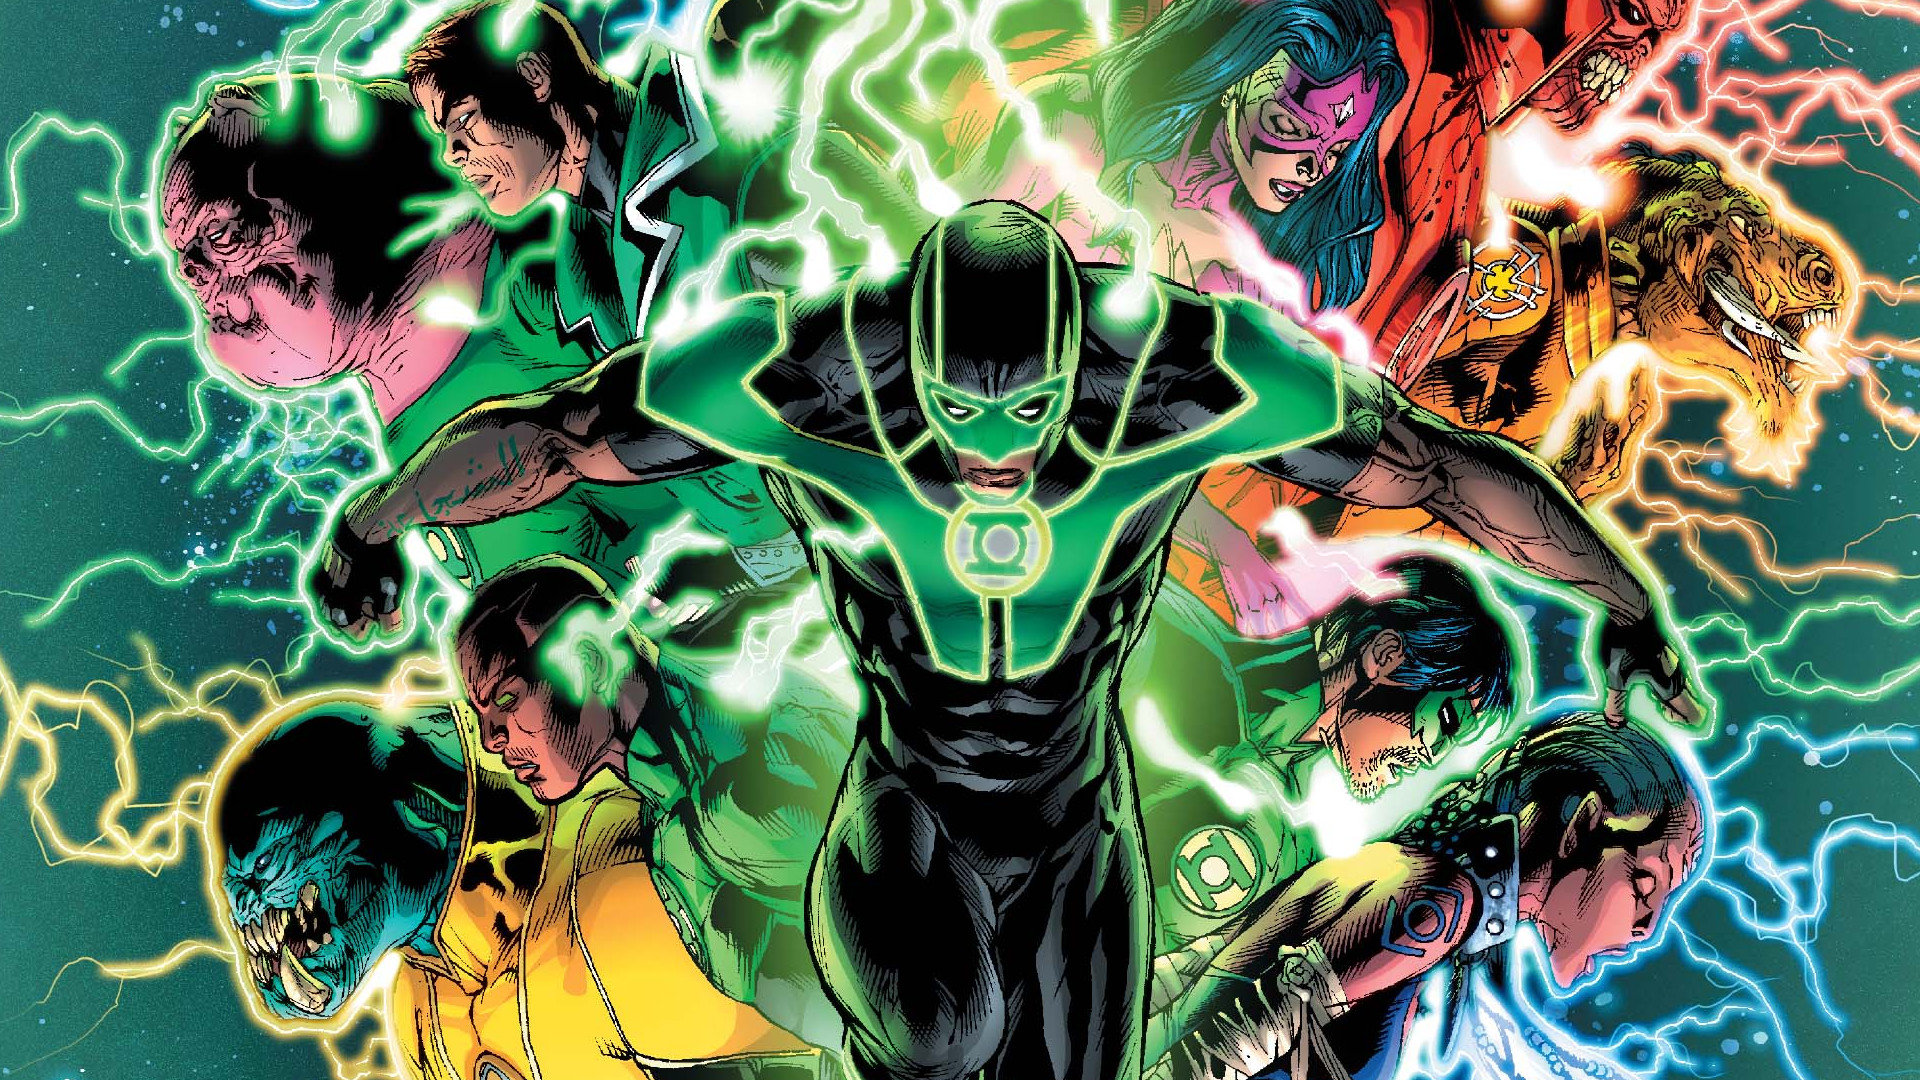 Free Green Lantern Corps high quality wallpaper ID:277495 for full hd desktop